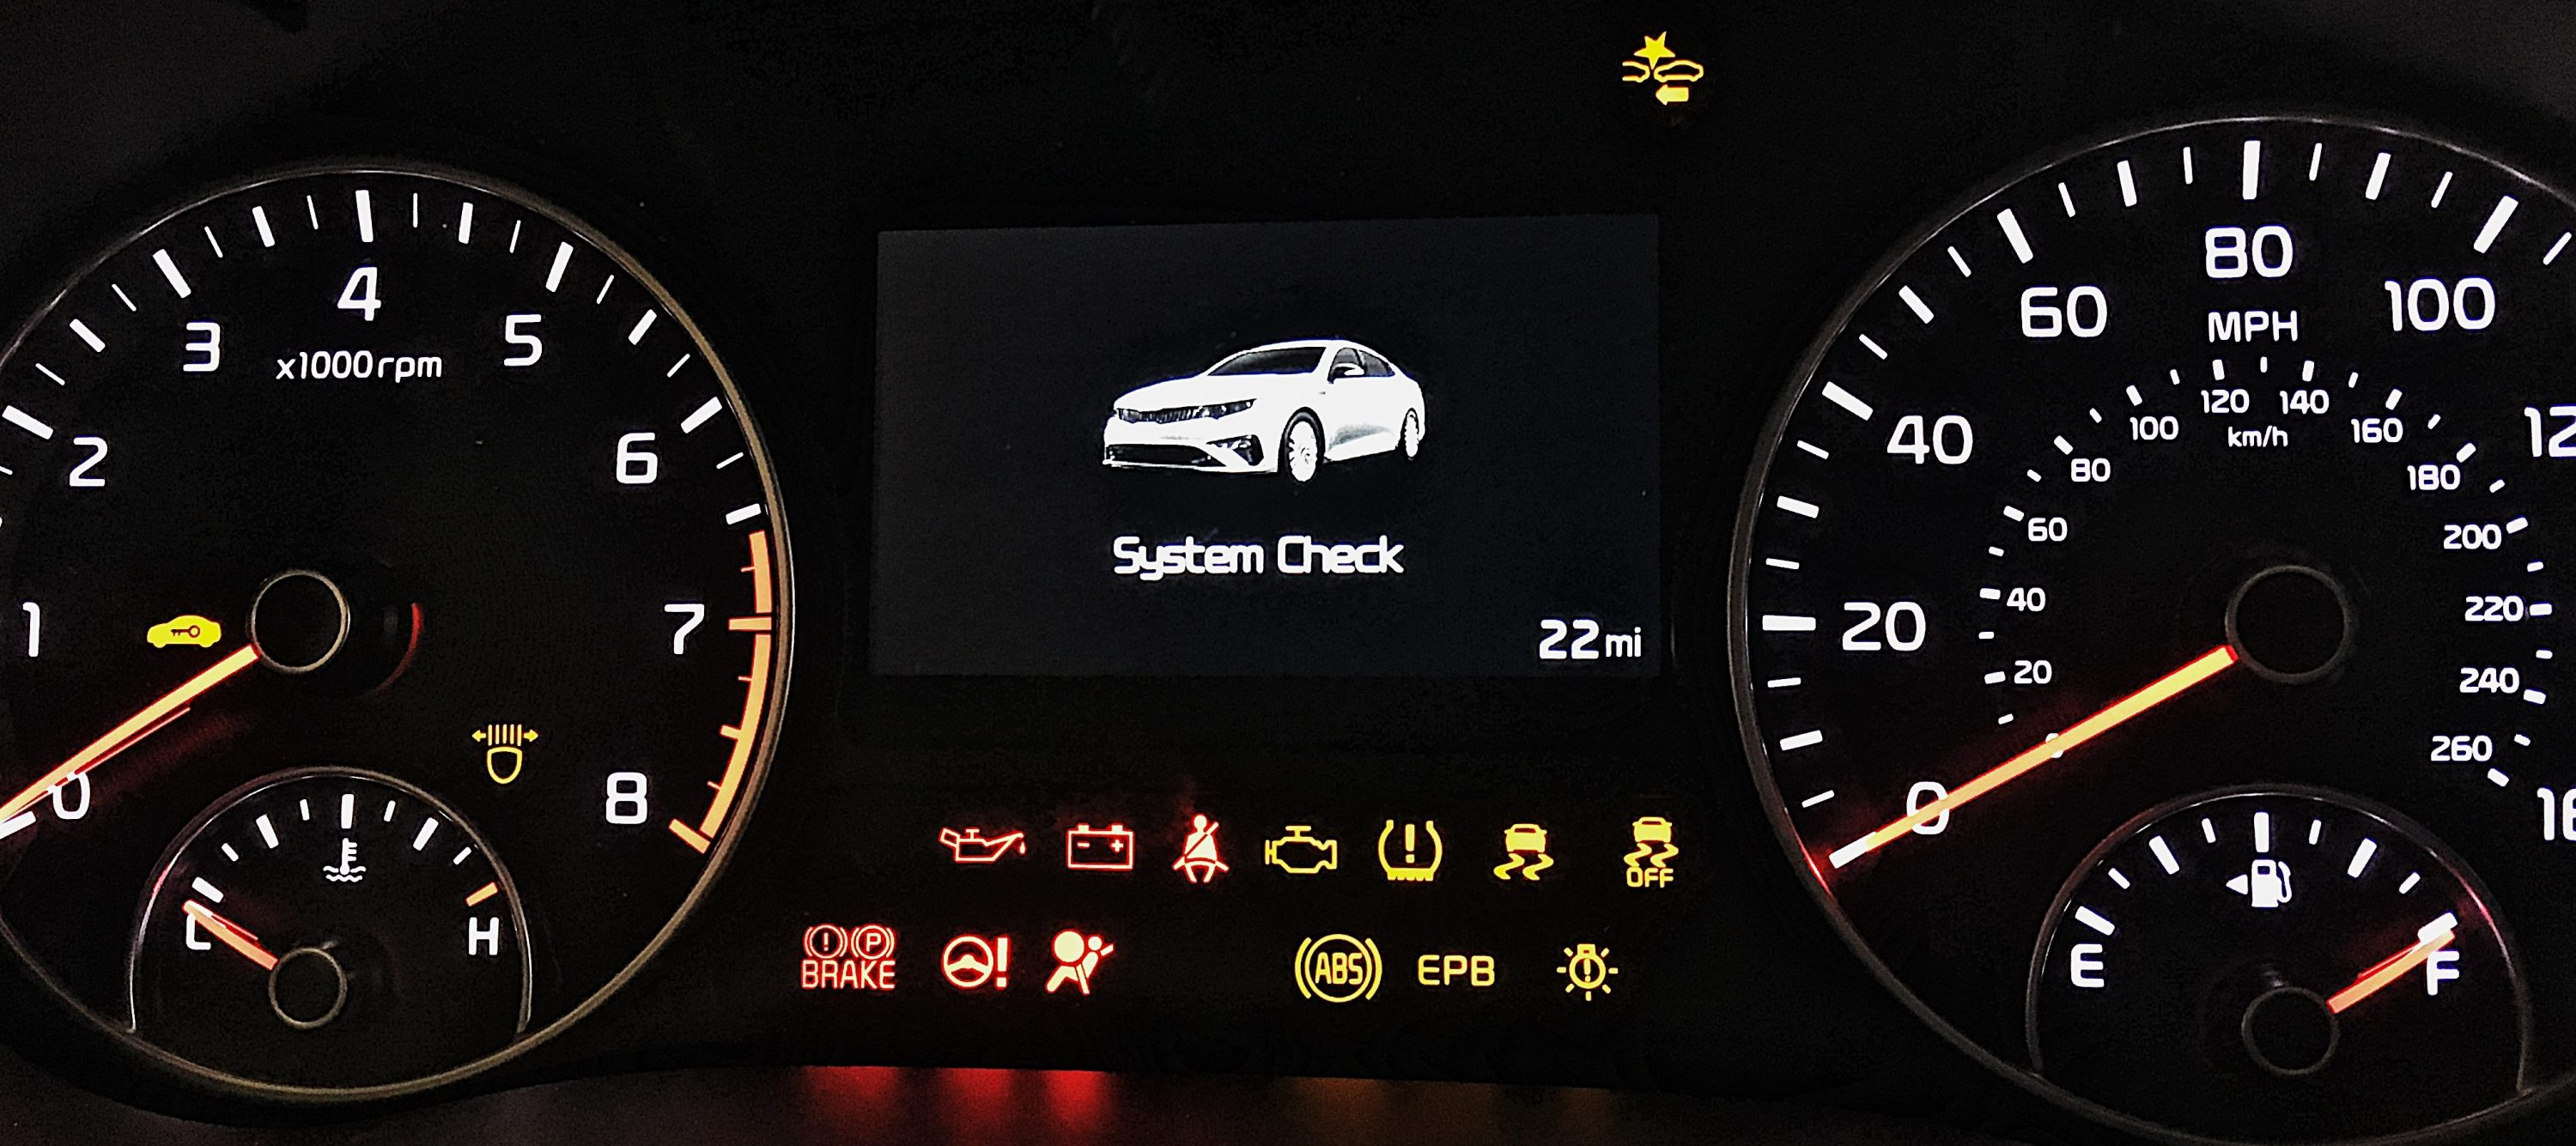 15 Car Dashboard Warning Lights: What do they mean? - Matt